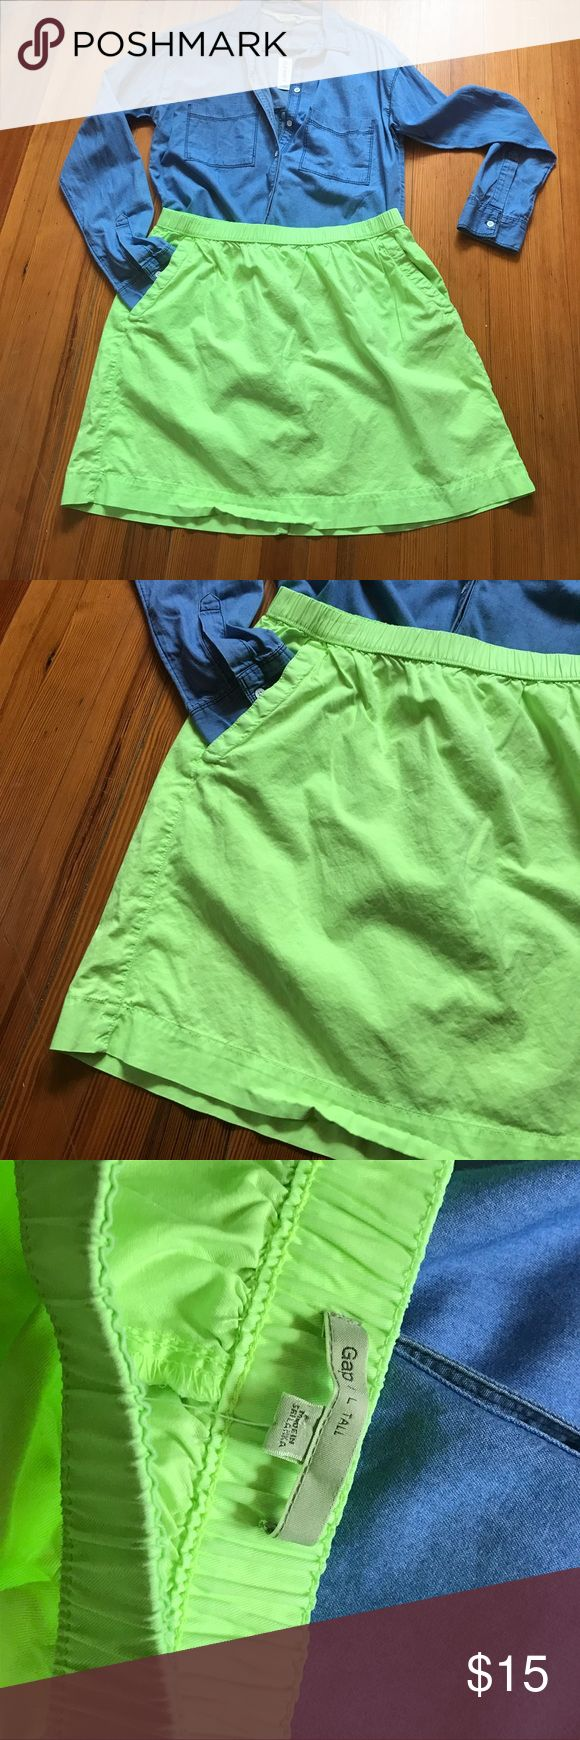 GAP Neon skirt Official color neon sugarcane kiwi. With pockets. The tall size makes it more modest in length. Size large tall.  NEW WITH TAGS!! GAP Skirts